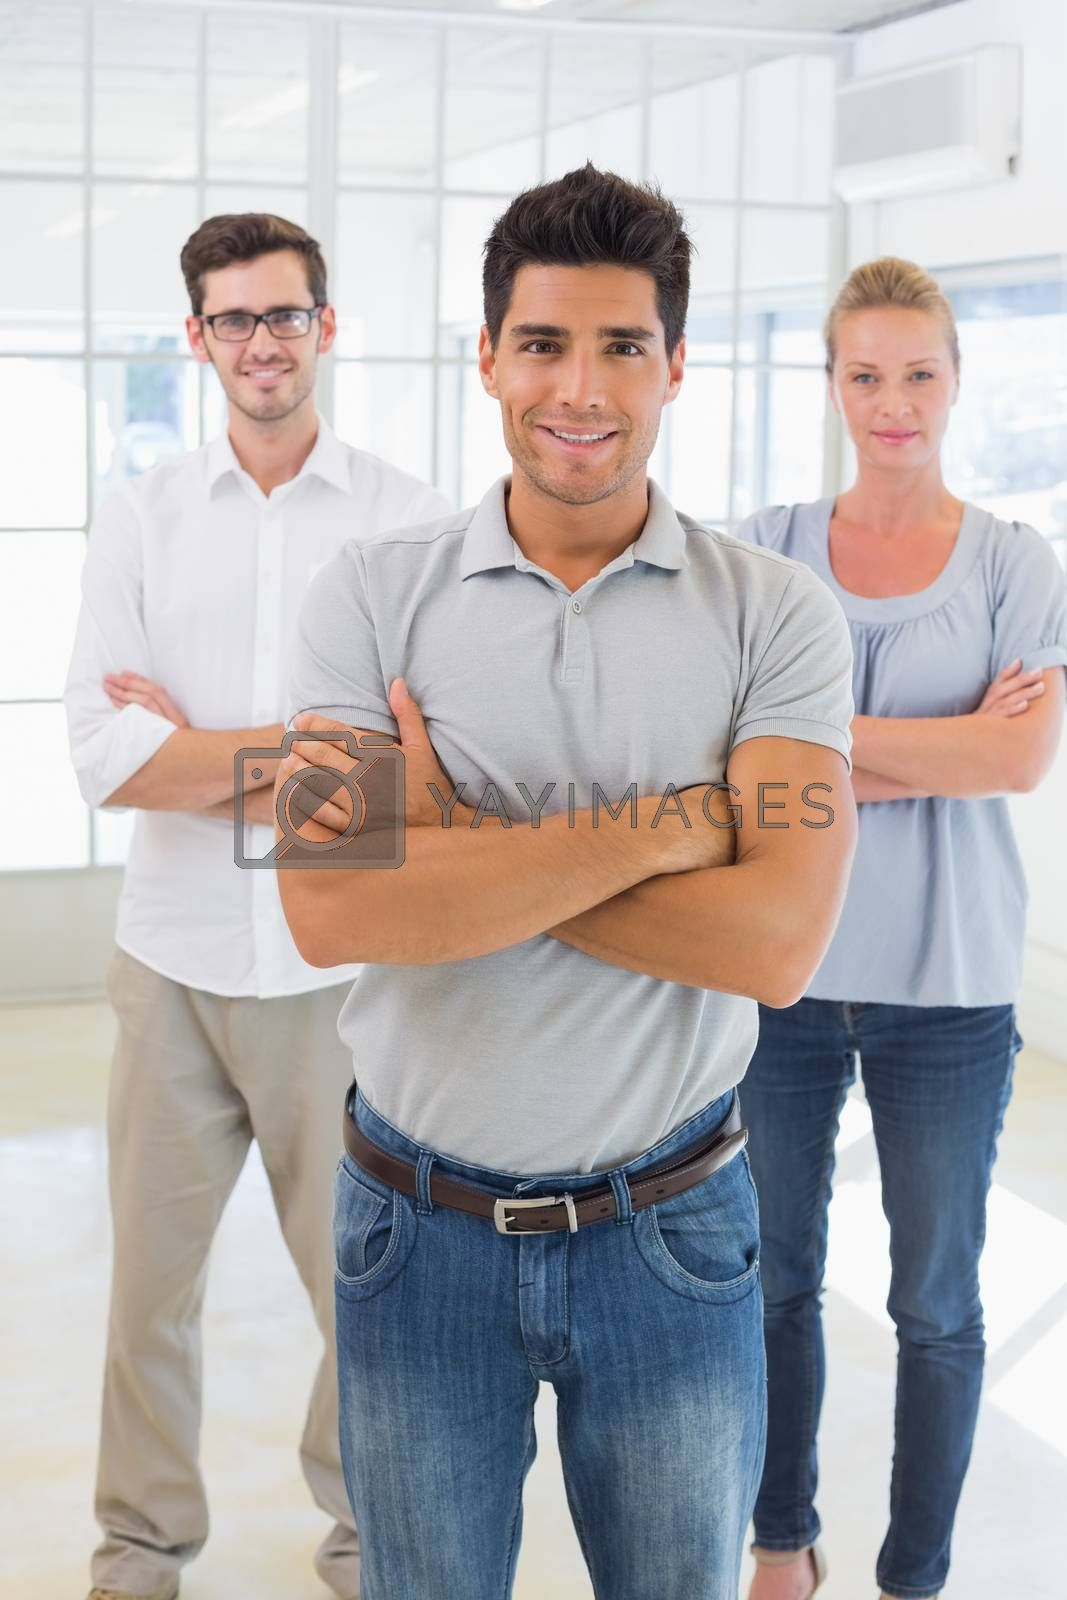 Royalty free image of Casual business team smiling at camera by Wavebreakmedia